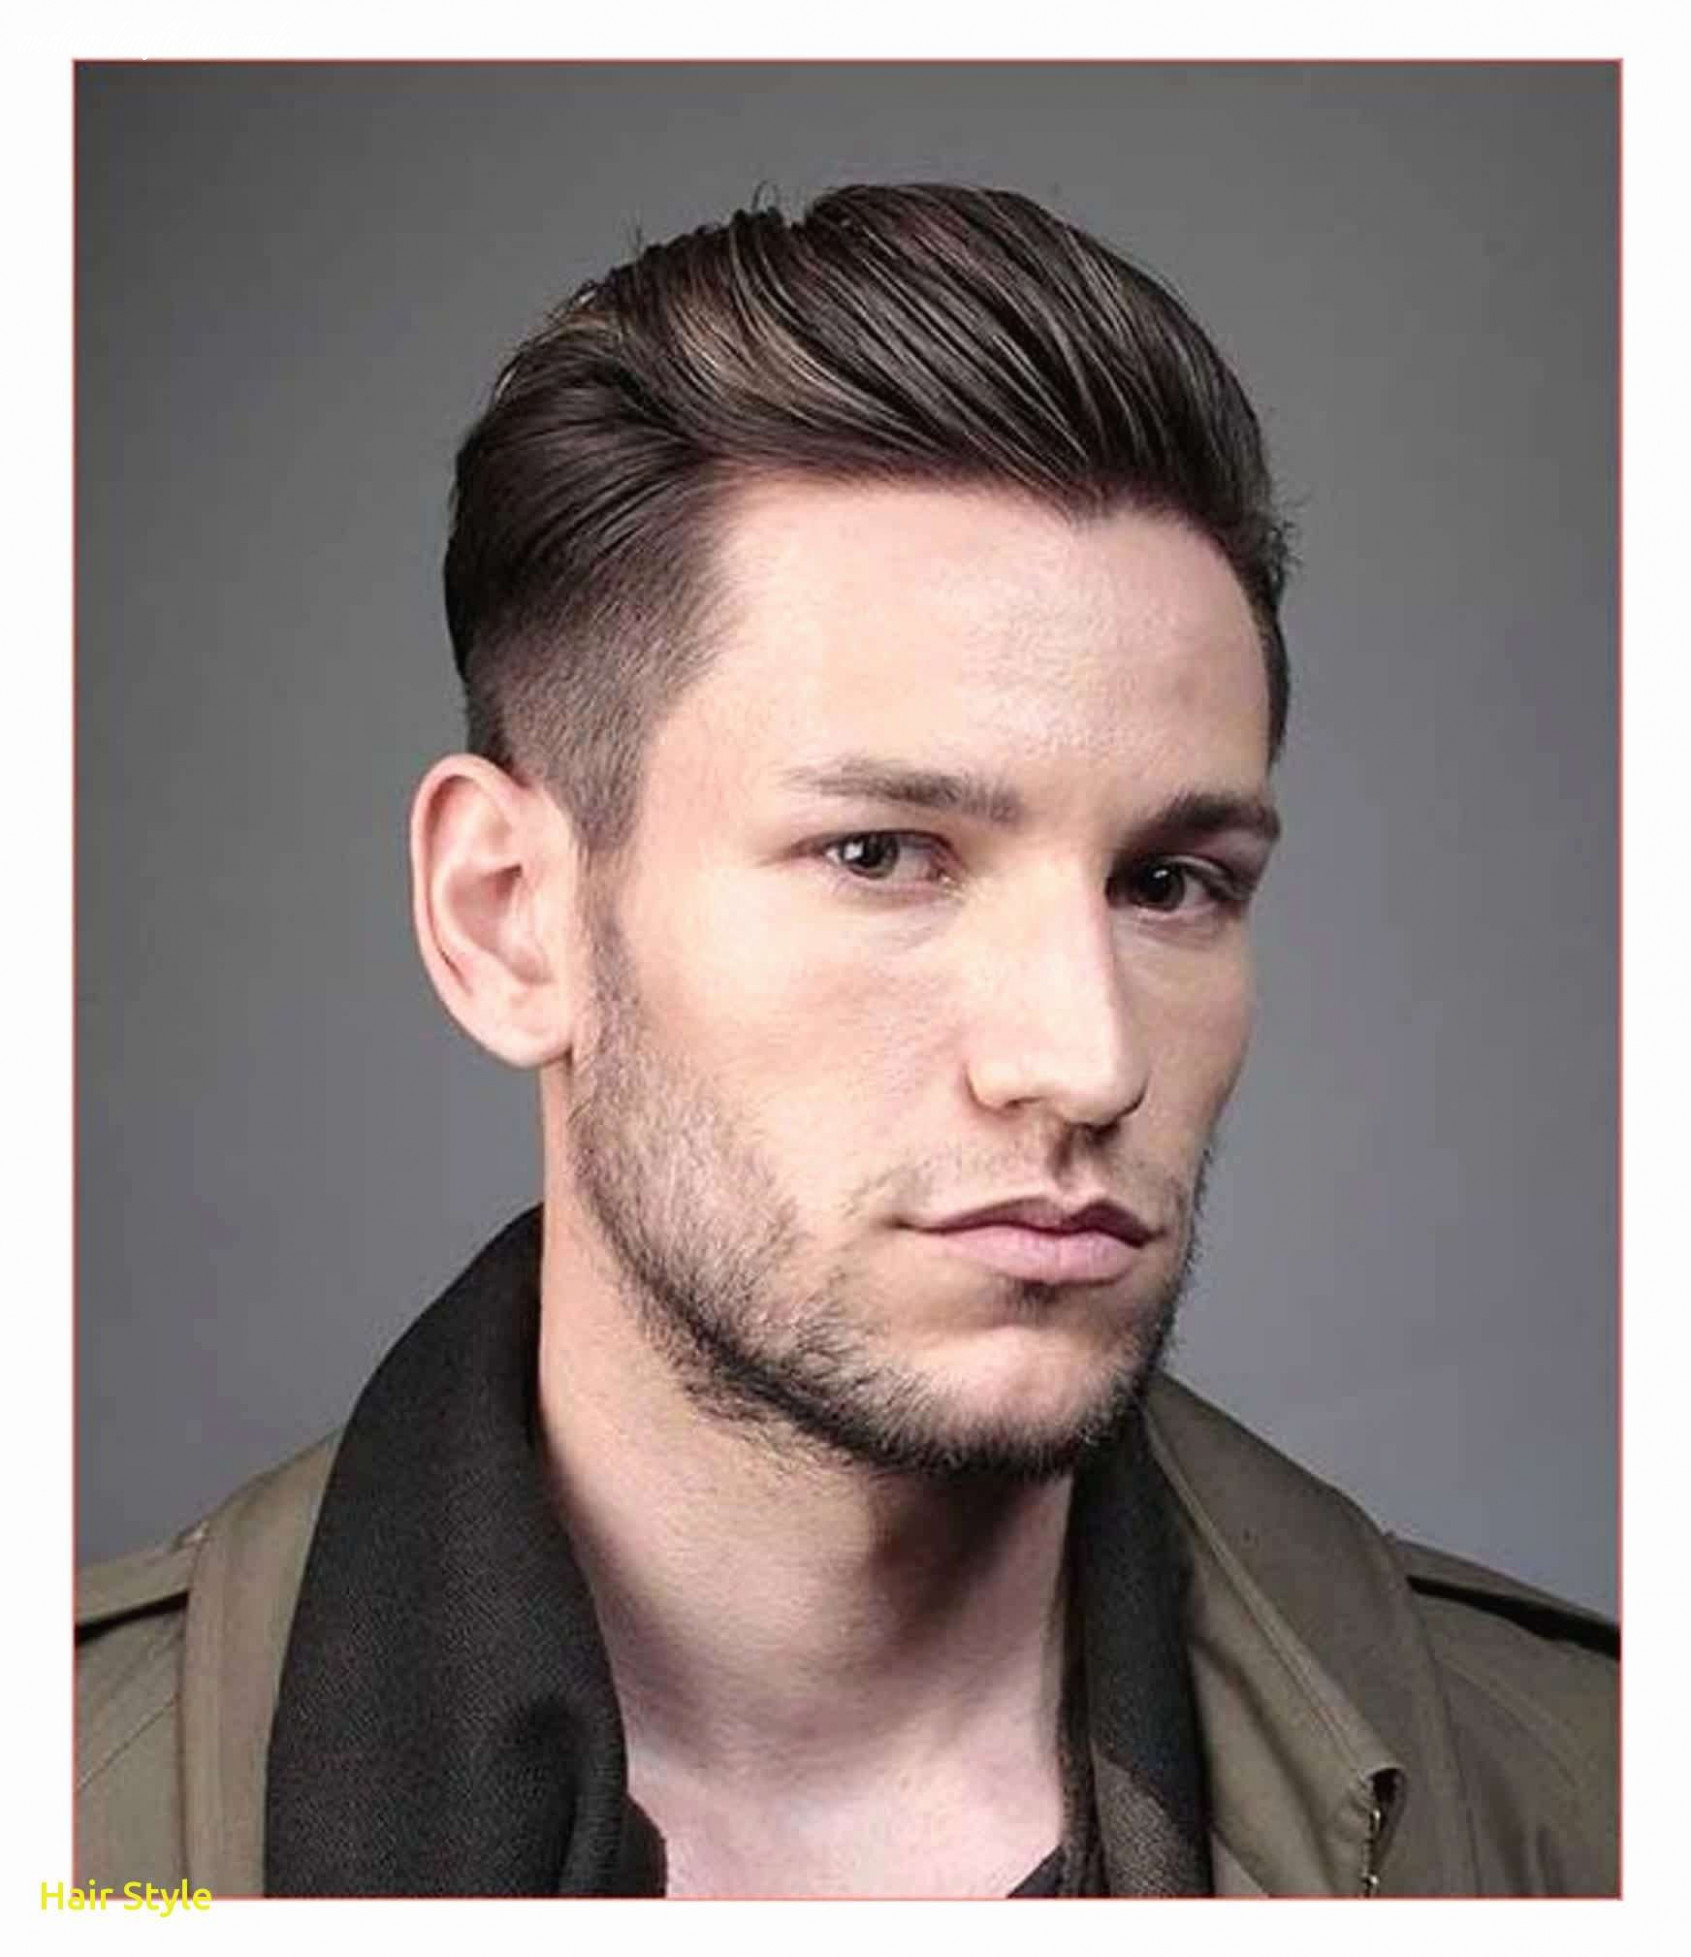 Medium Length Hairstyles for Men Fresh Frisuren Lange Dünne Haare ...